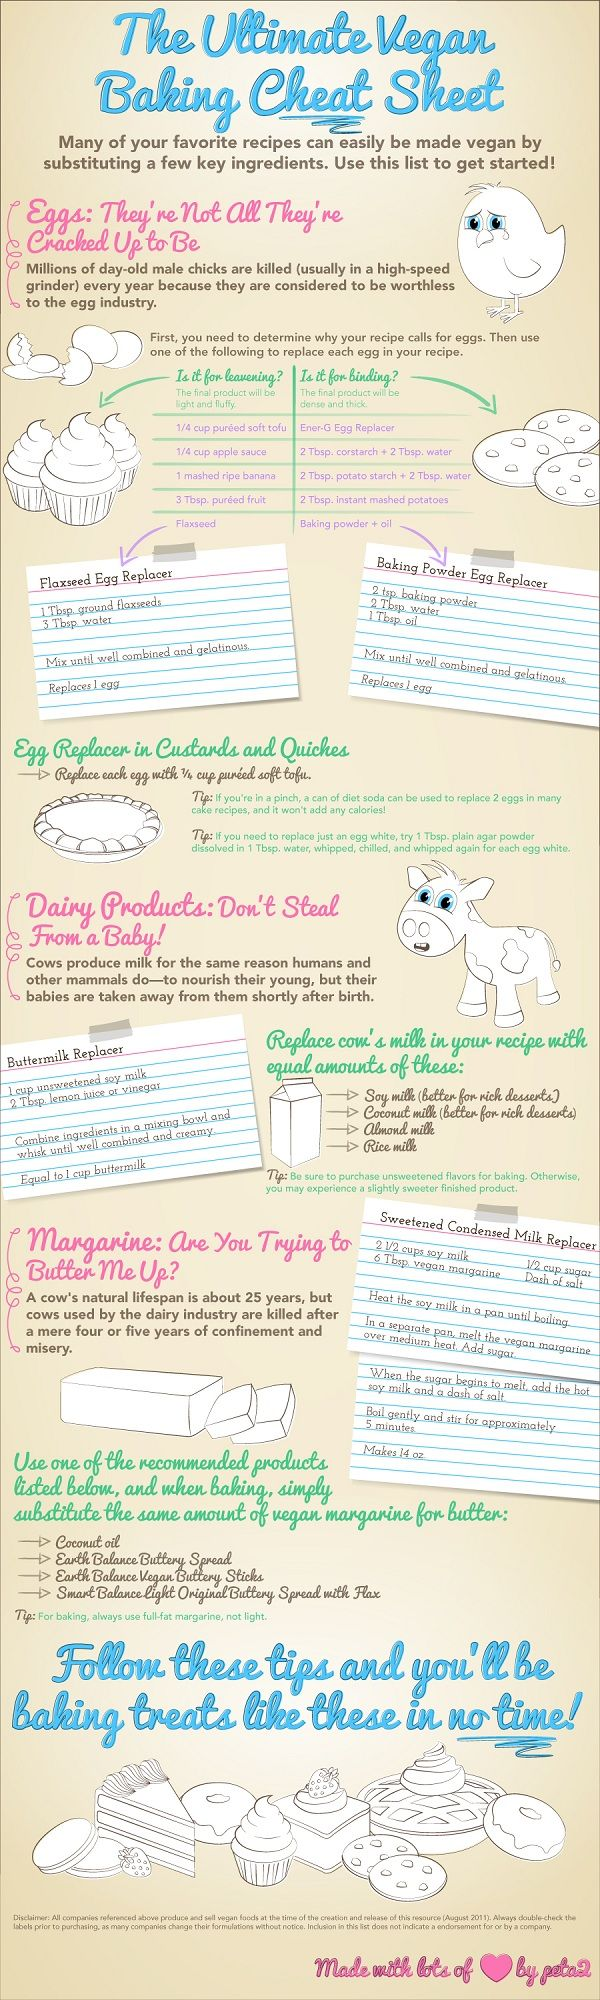 Awesome Cheat Sheet for Dairy free as well! Good substitues for things